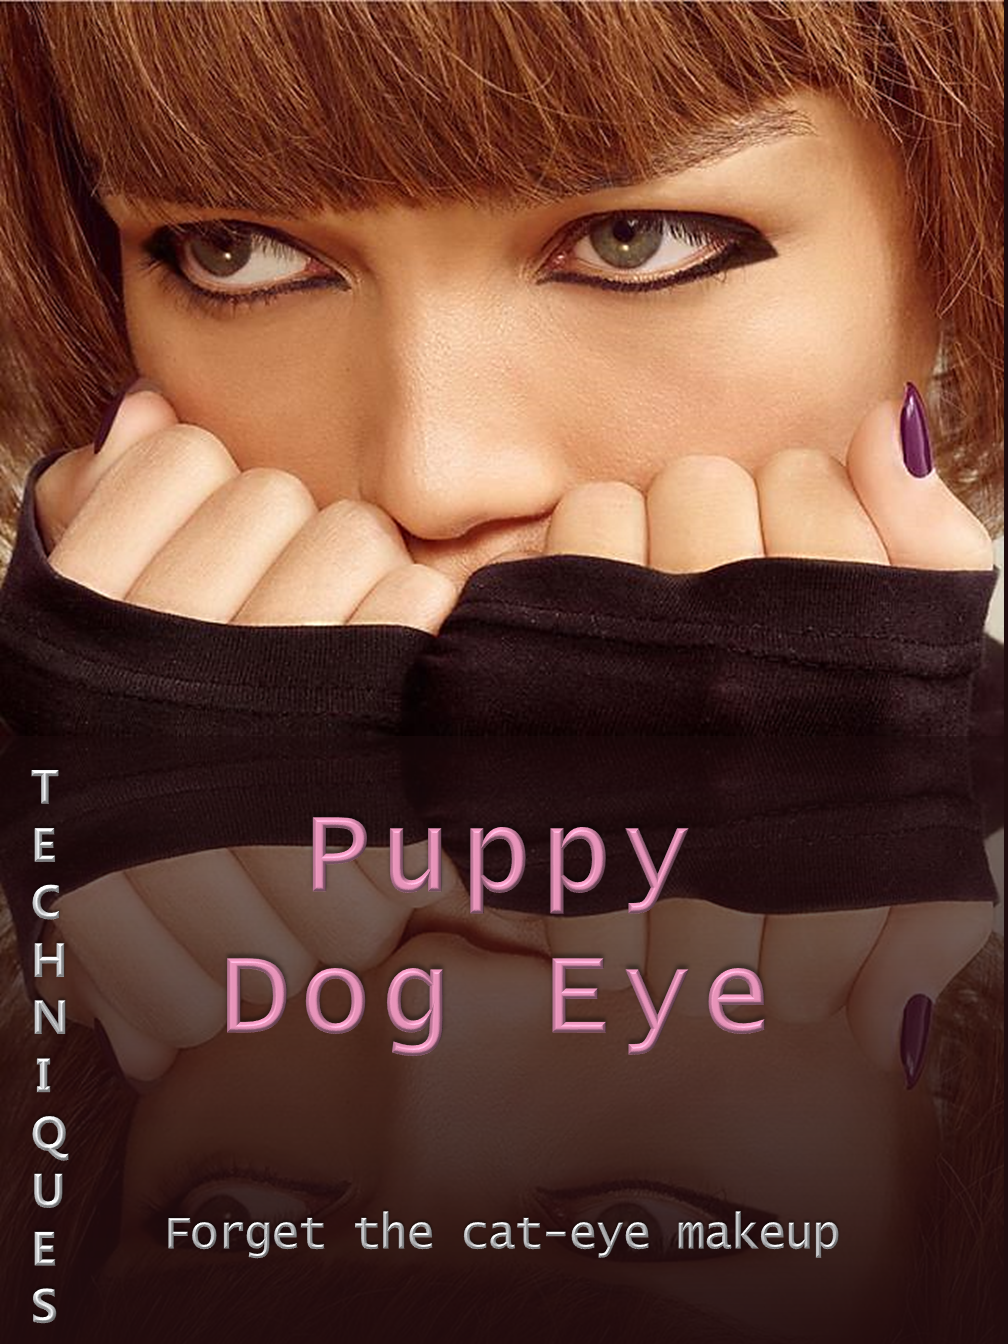 Puppy Dog Eye